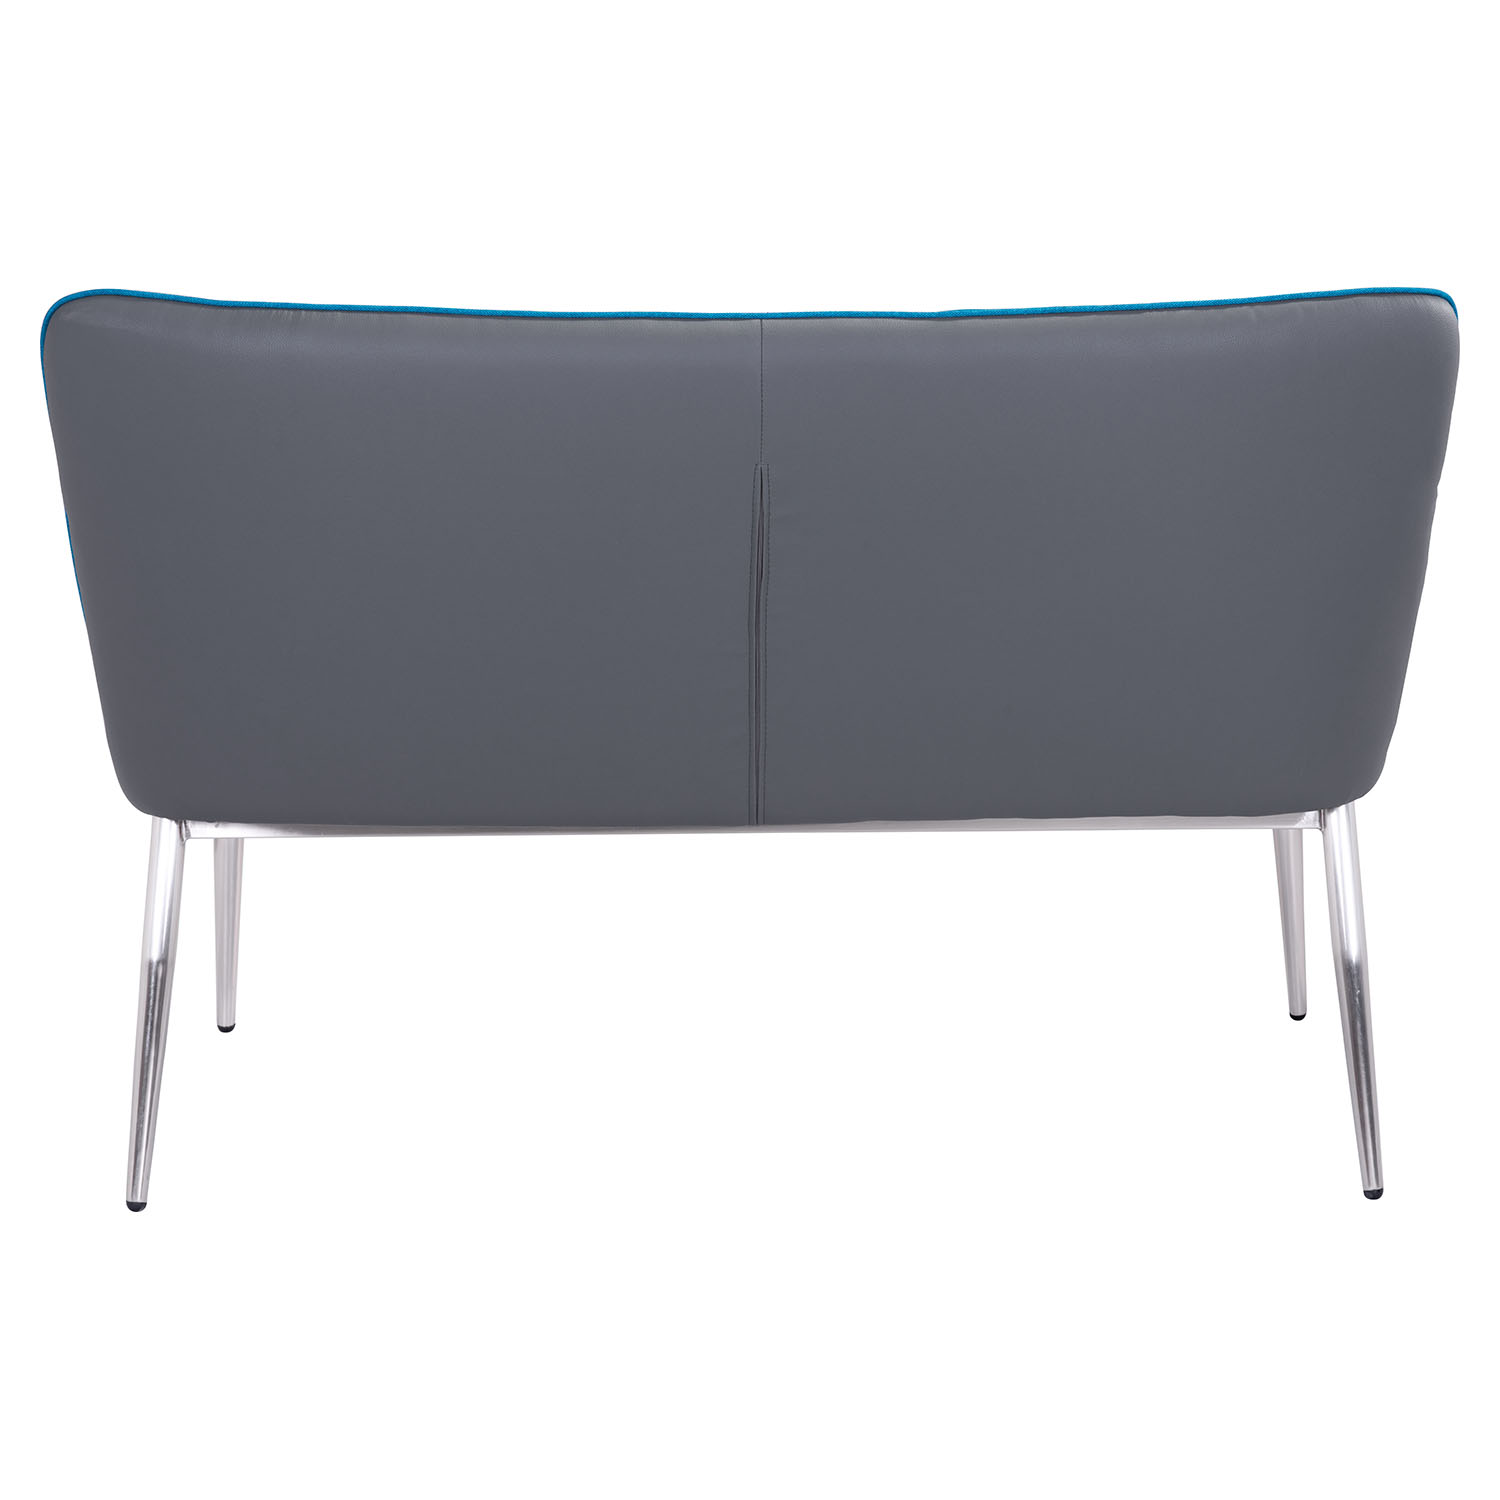 Hope Bench - Tufted, Blue and Gray - ZM-100241